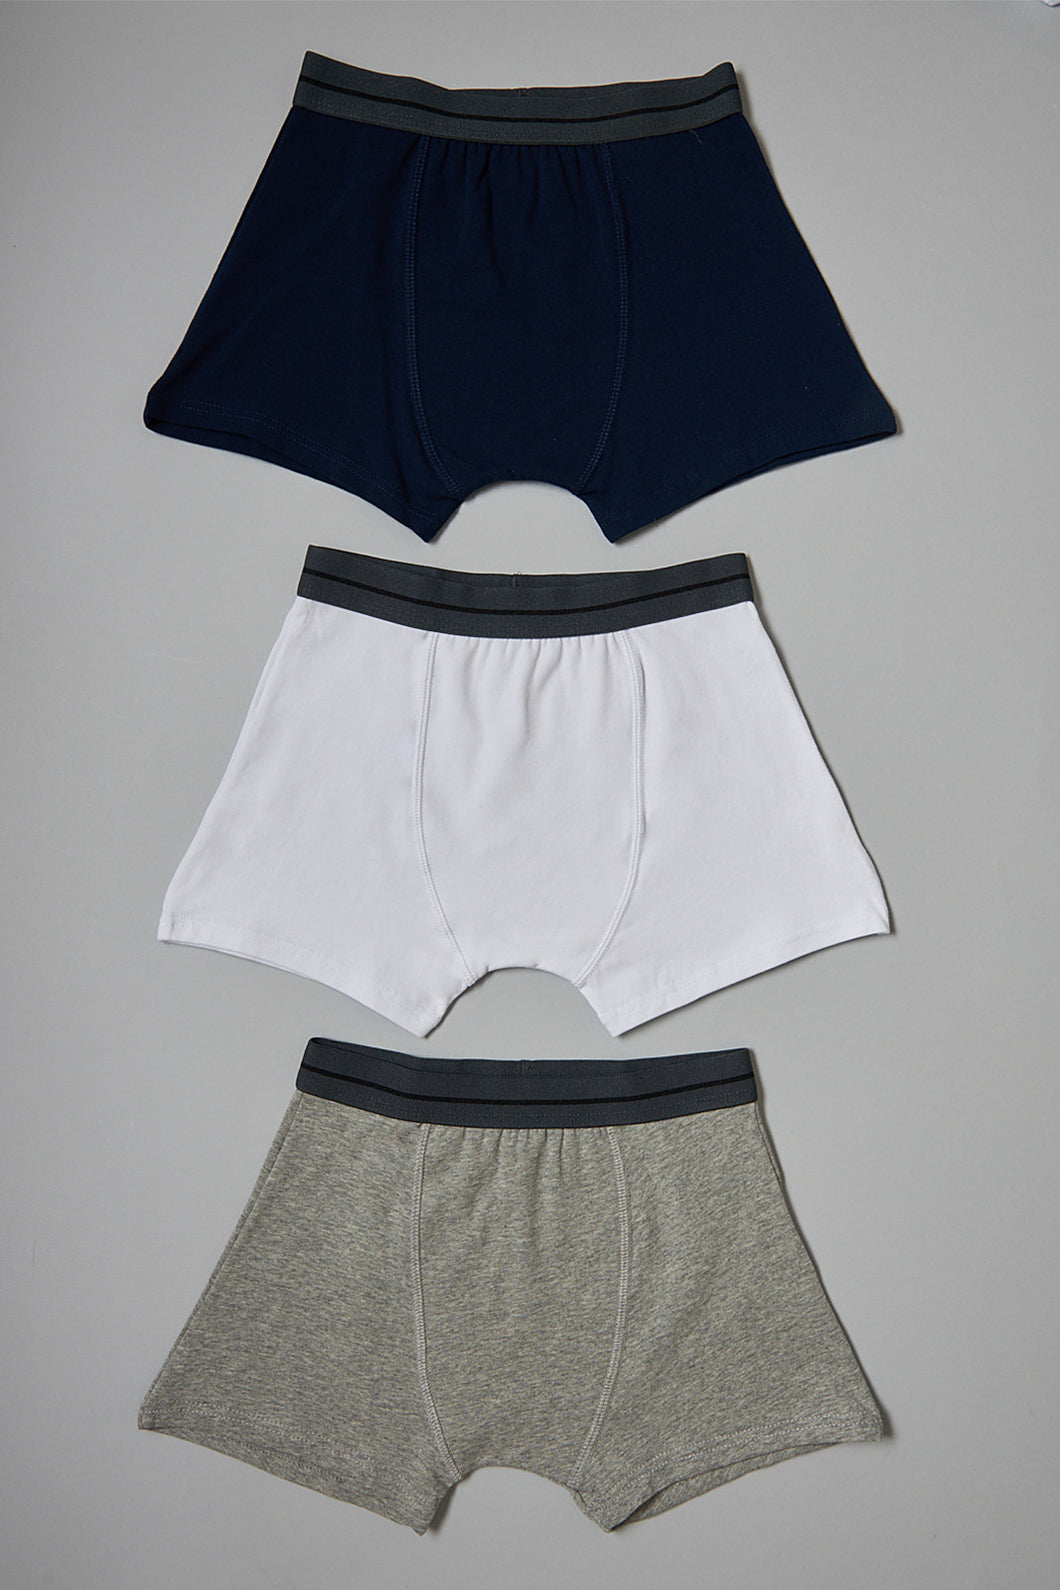 Assorted Plain Boxers (3-Pack)